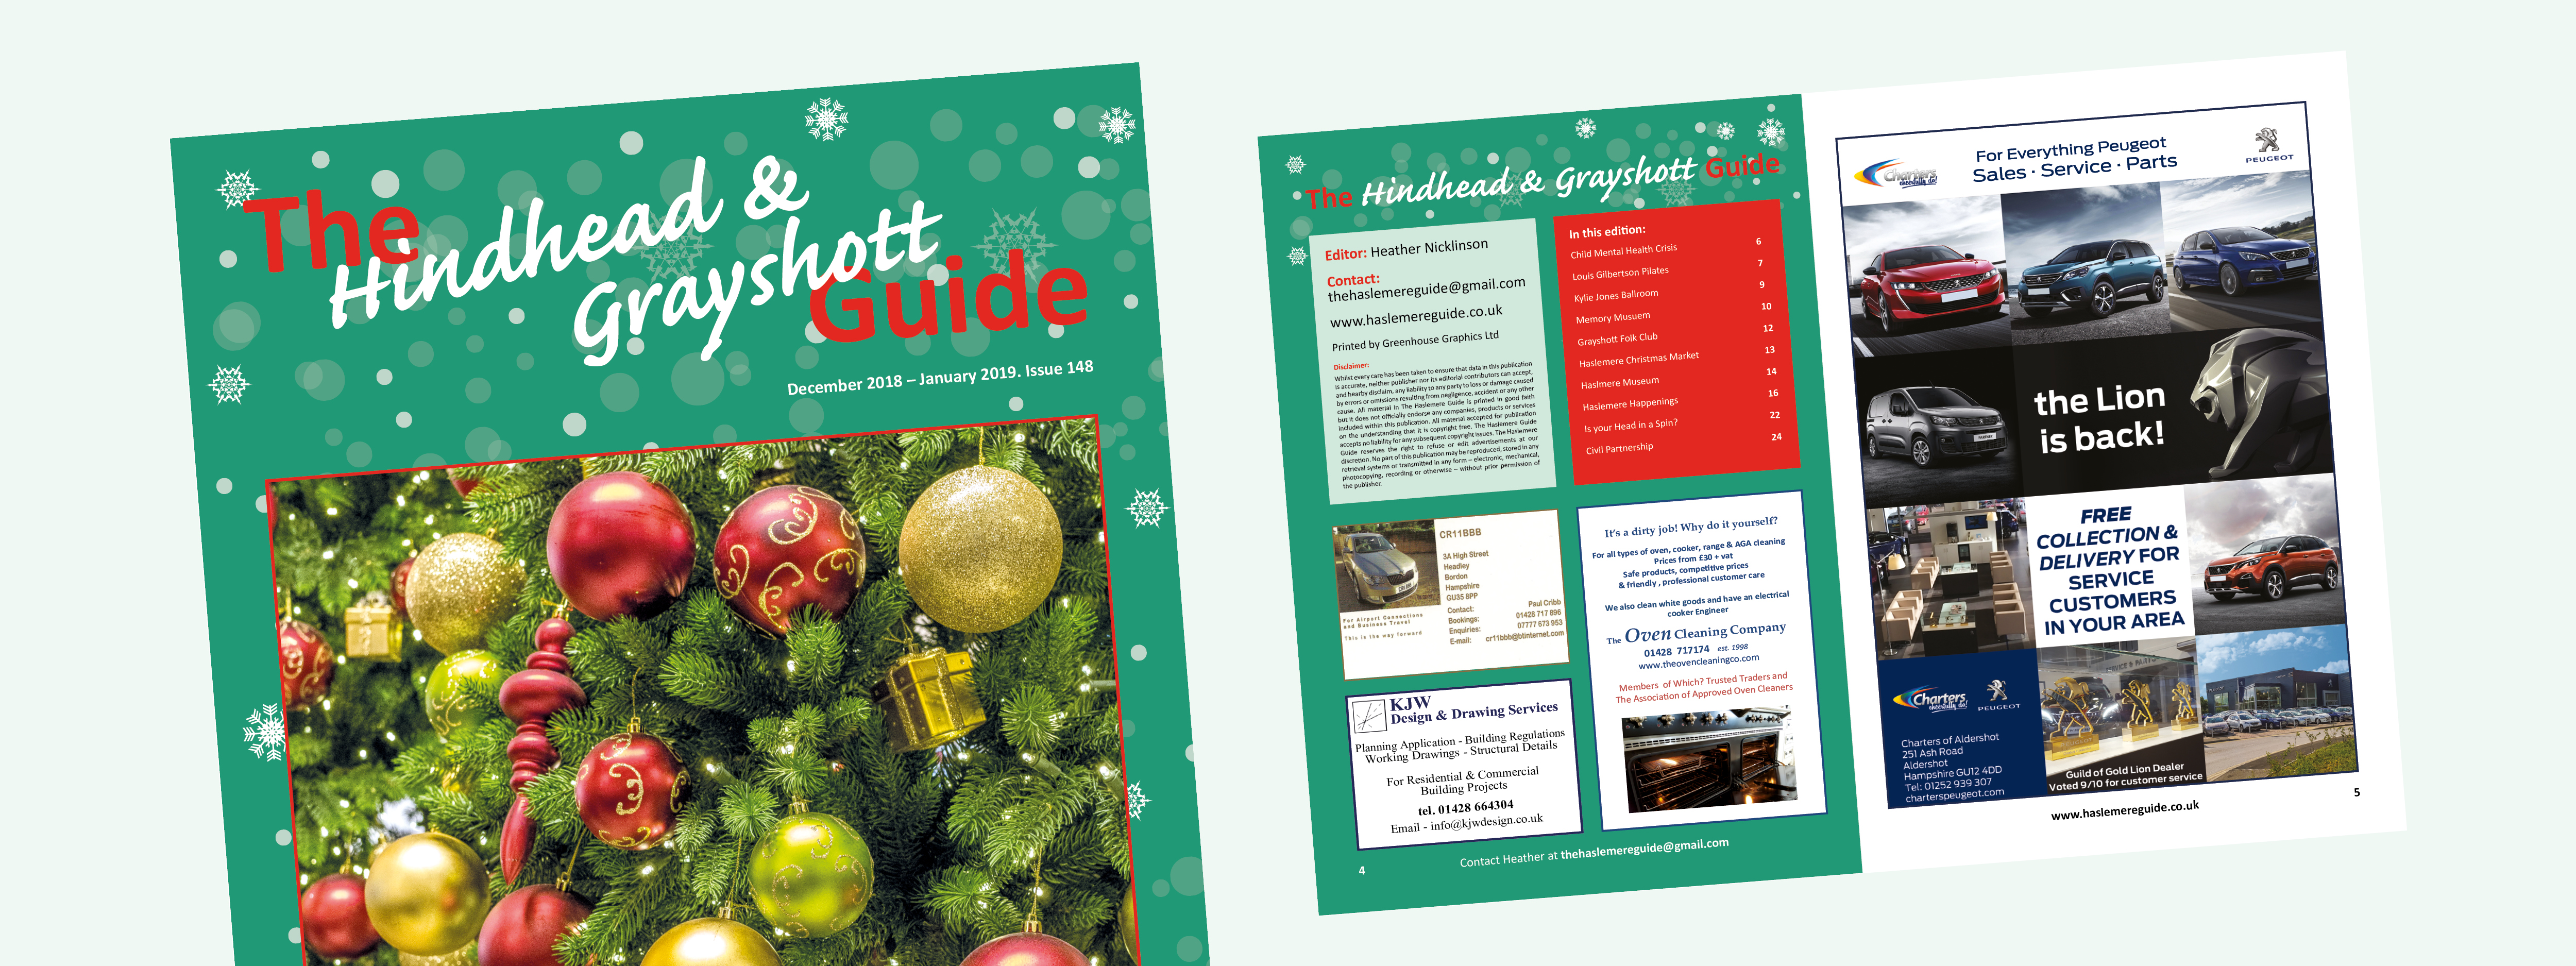 The December/January edition of the Hindhead & Grayshott Guide is now available to download